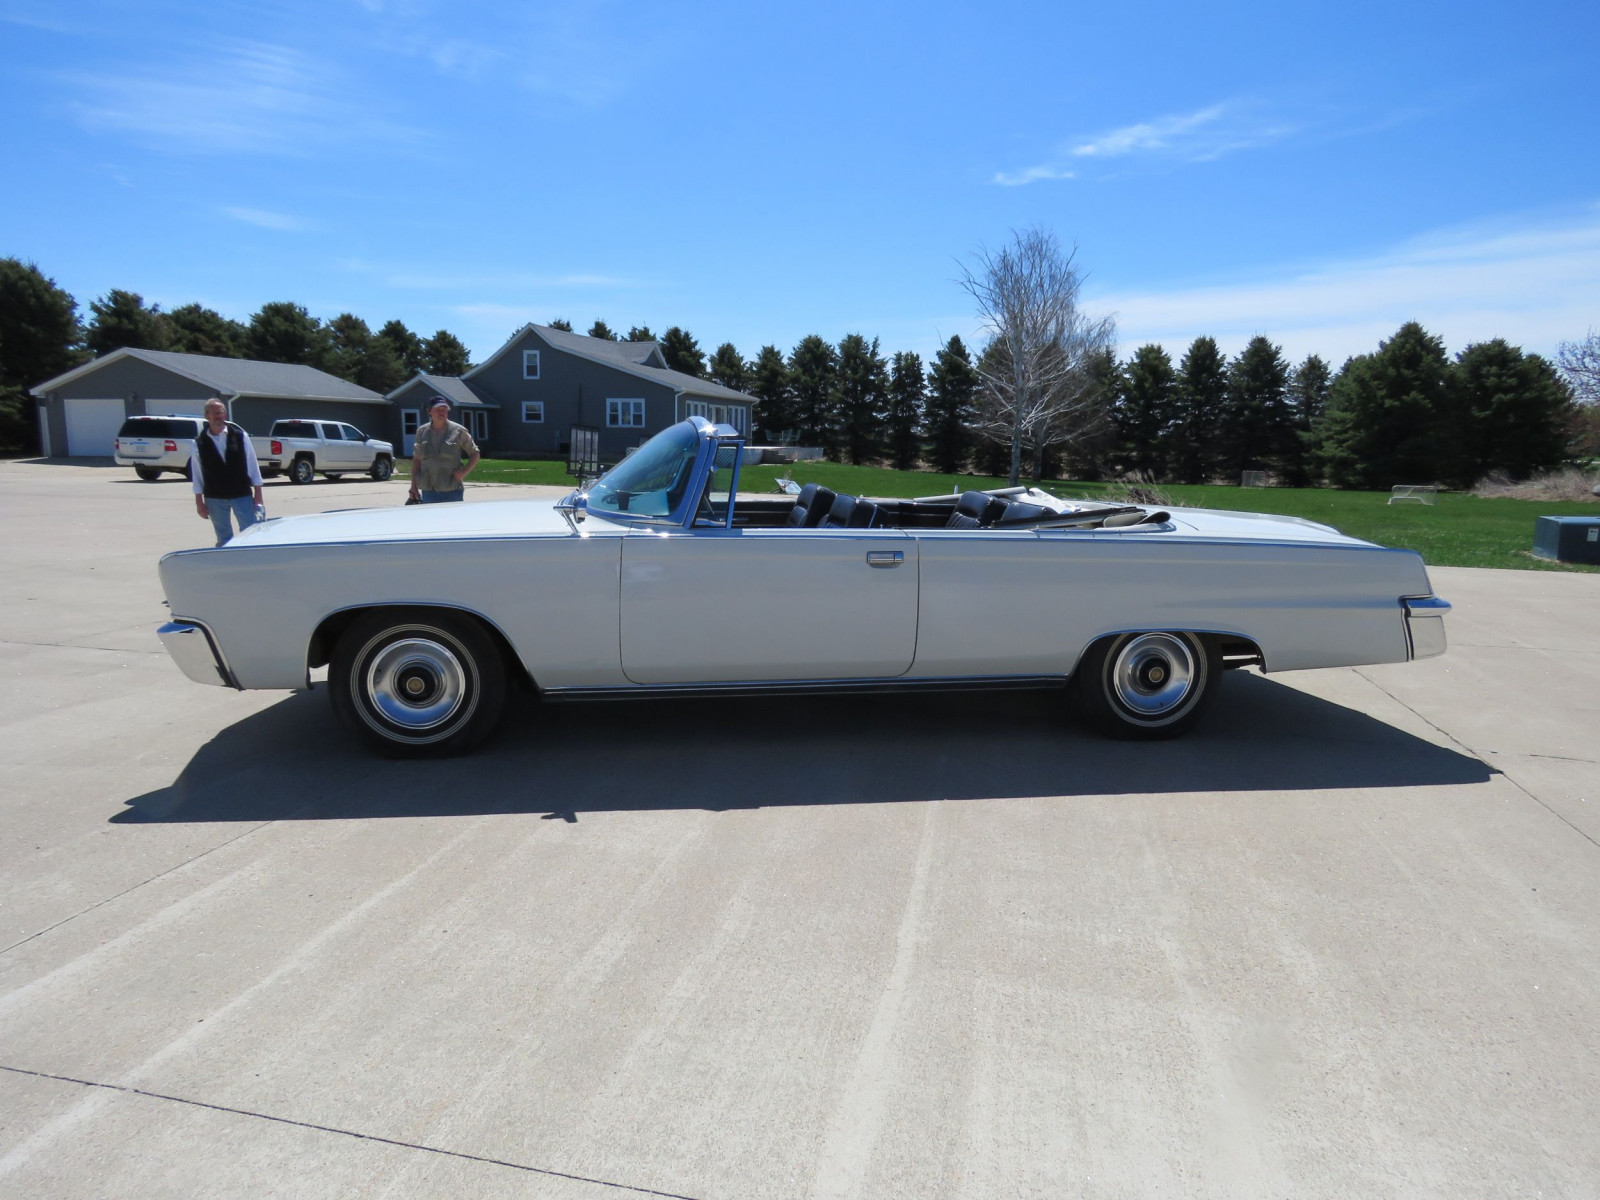 1965 Chrysler Imperial Crown Convertible - Image 4